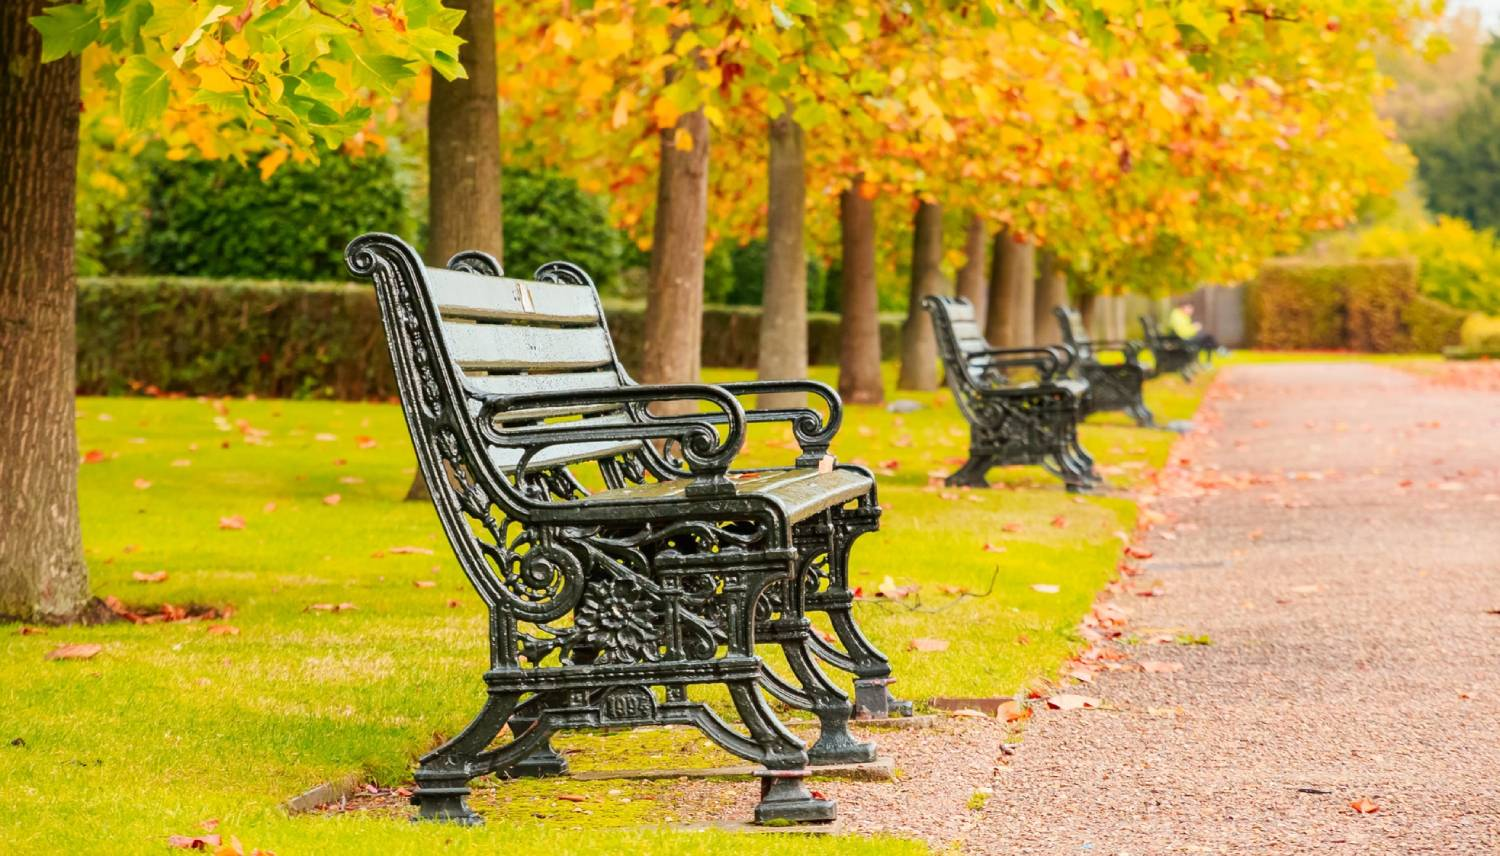 Regent's Park - Things To Do In London